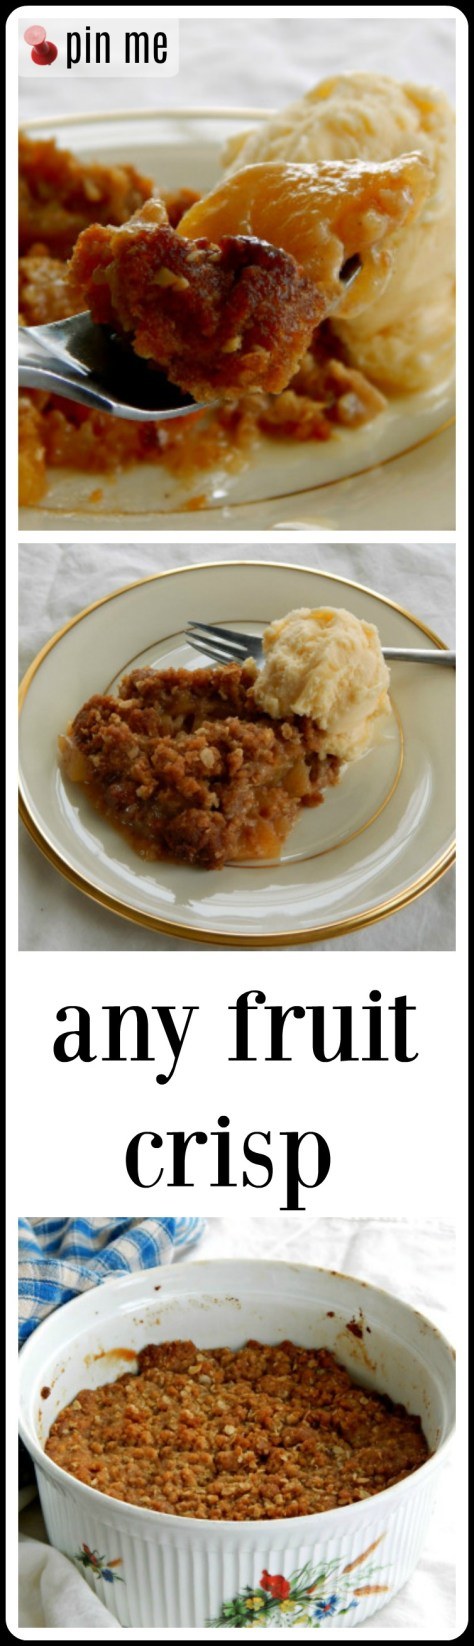 Any Fruit Crisp - just like it sounds! Directions for the best crisp made with just about any fruit